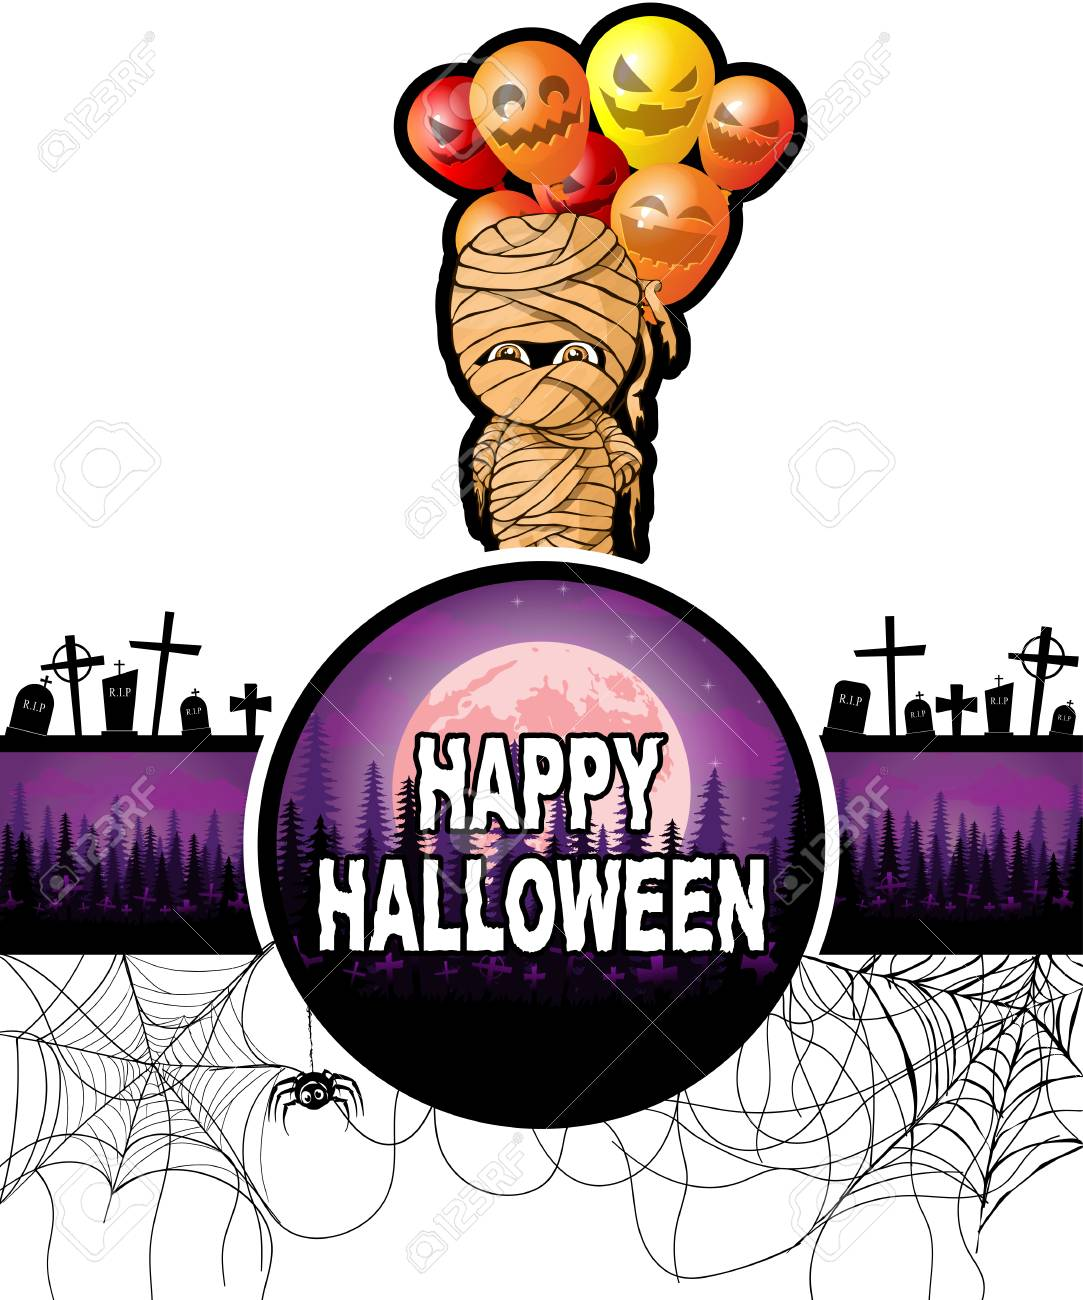 Happy Halloween Design Template With Mummy With Balloons Royalty